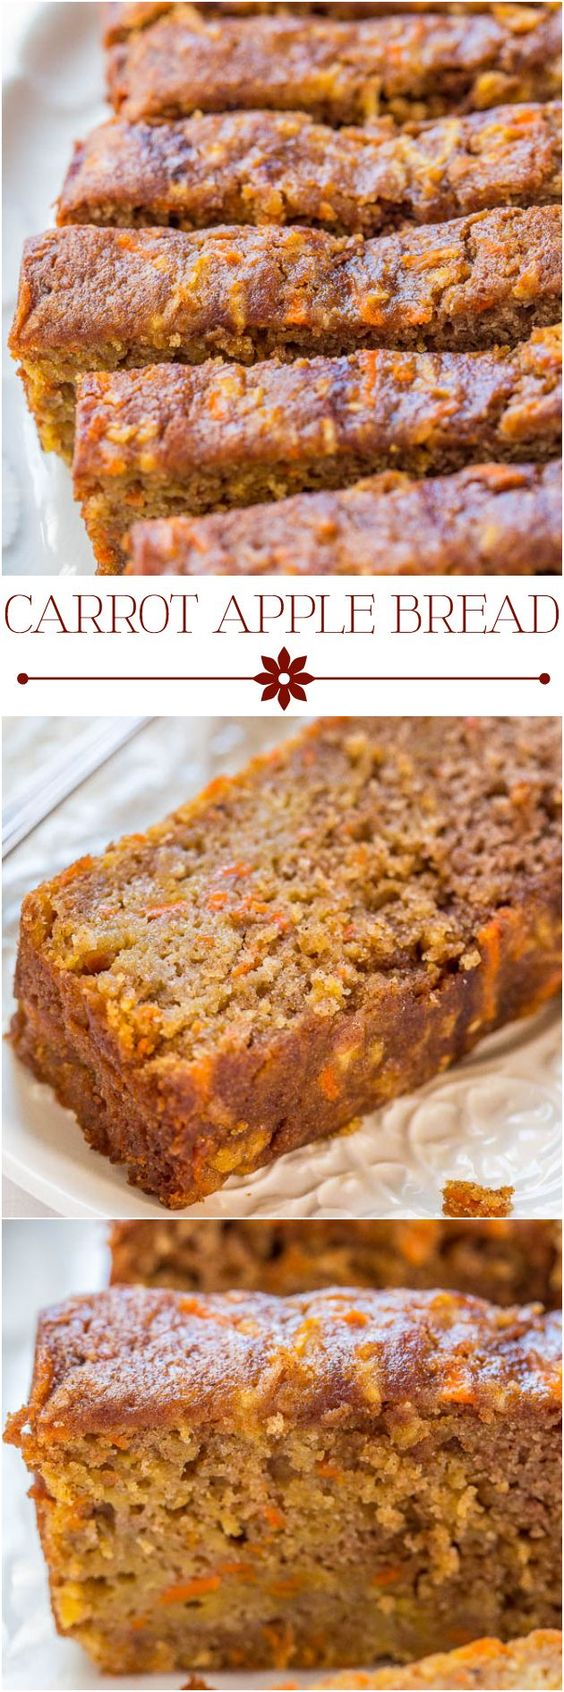 Carrot Apple Bread Recipe via Averie Cooks - Carrot cake with apples added and baked as a bread, so it's healthier! Super moist, packed with flavor, fast and easy!! #dessertbreads #neighborgifts #homemadegifts #foodgifts #breadrecipes #flavoredbreads #sweetbreads #holidaybread #bread #homemadebread #simplebreadrecipes #simplebread #simplerecipes